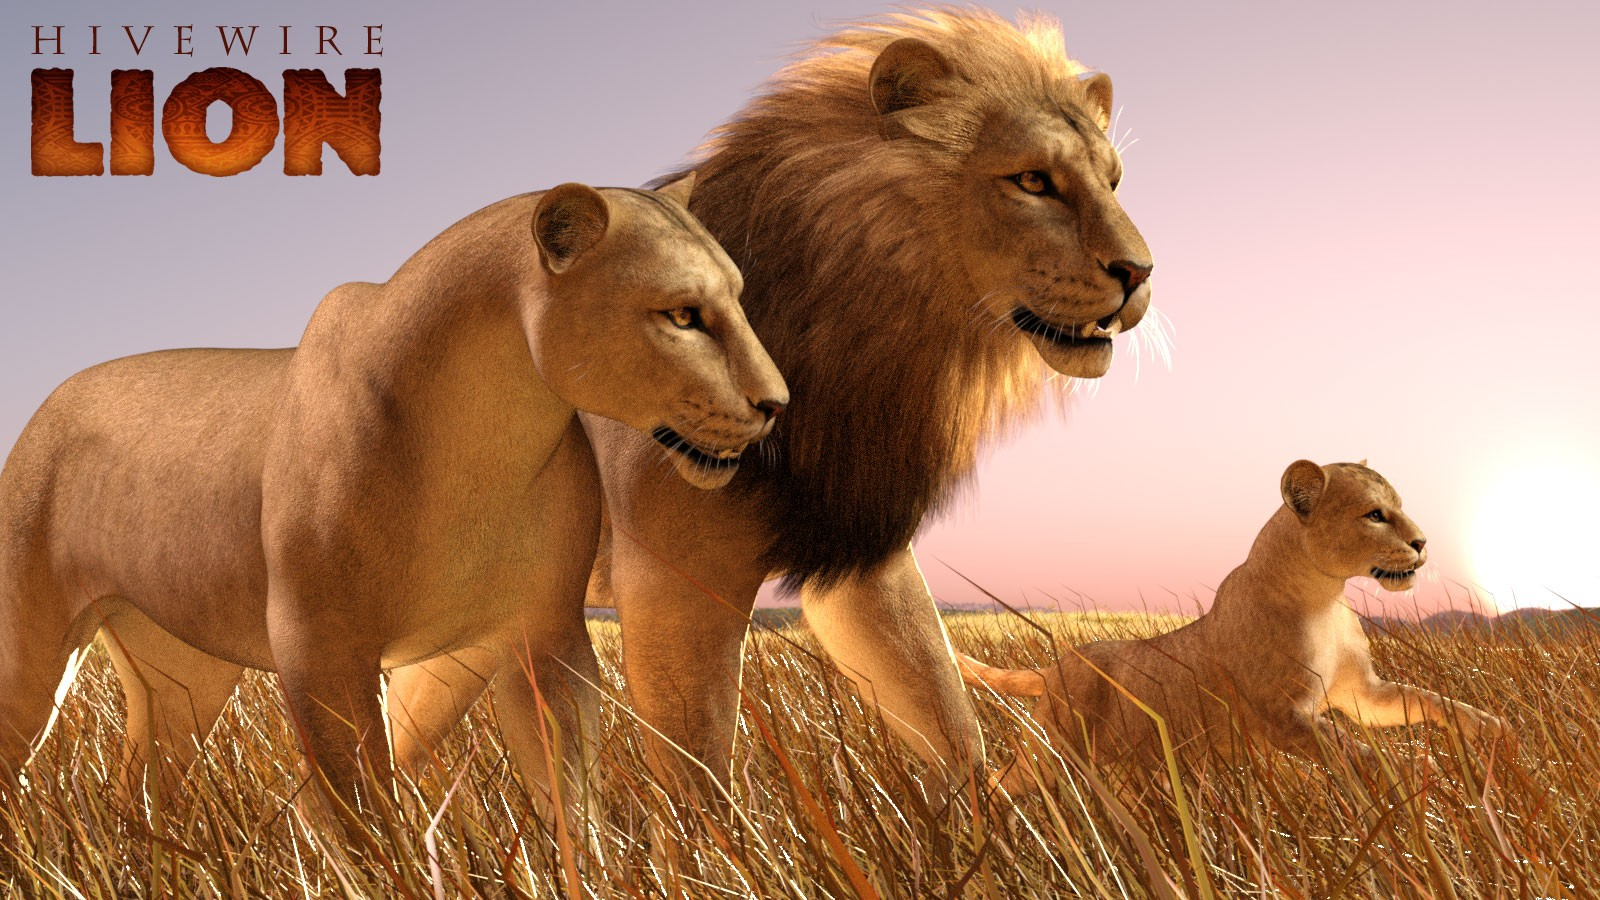 11926-hivewire-lion-family-main.jpg